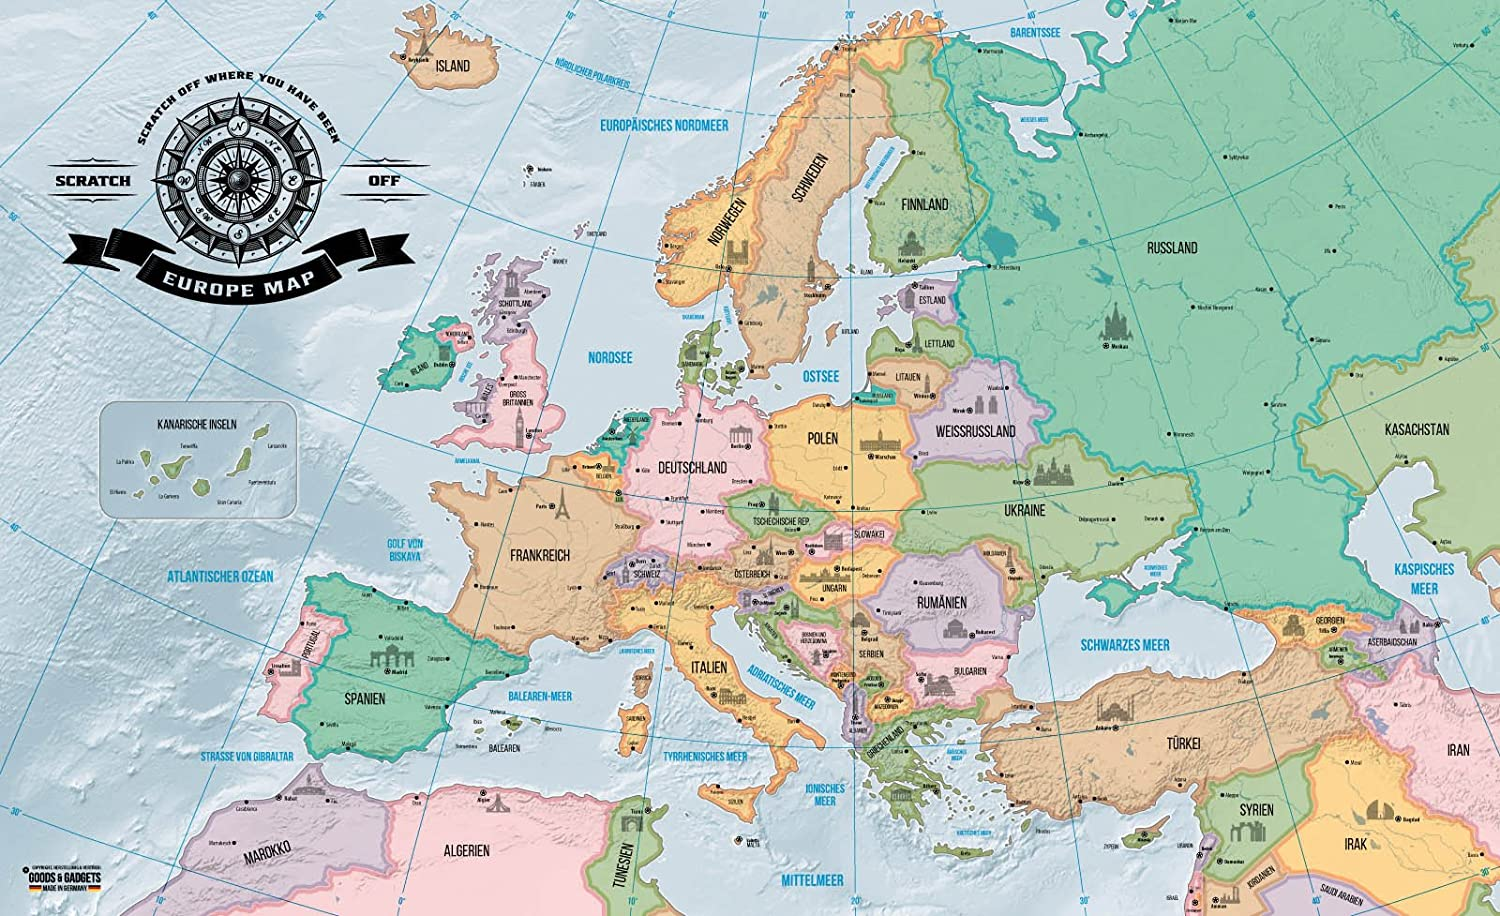 Scrape Off Europe Map Deluxe Personalized Travel World Map Wall